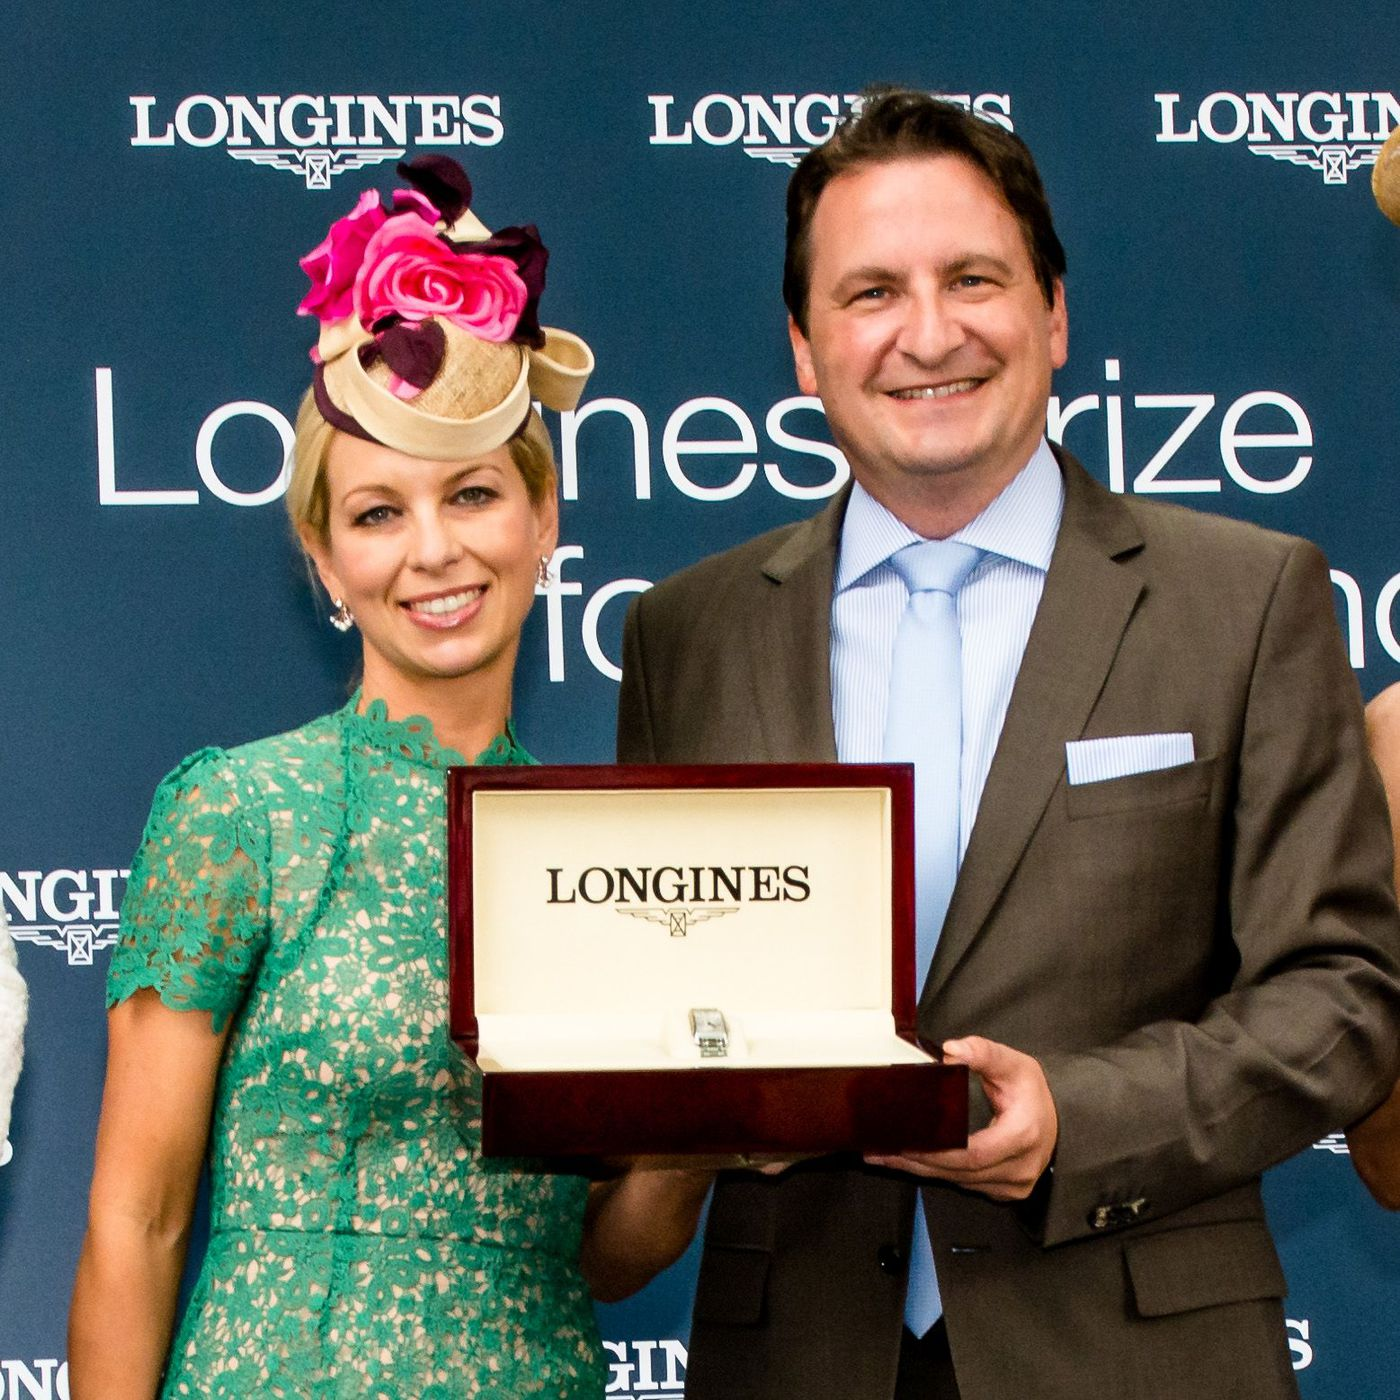 Longines Flat Racing Event: The Longines Positioning System used for the first time in Europe for the Longines Grosser Preis von Berlin 3